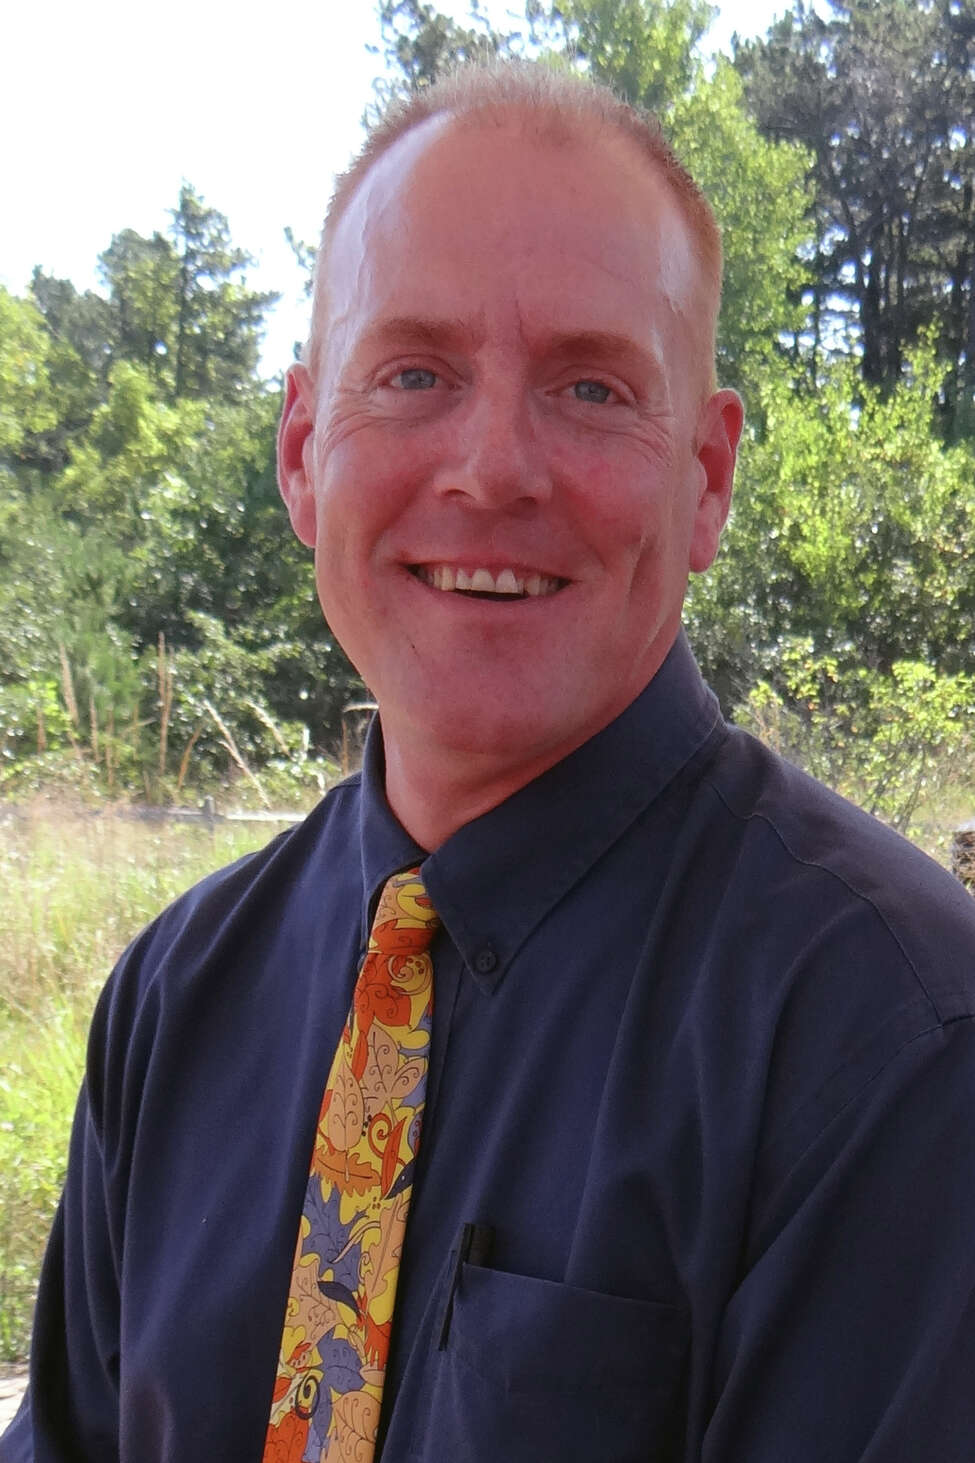 Neil Gifford, Conservation Director of the Albany Pine Bush Preserve recently sent a letter to town of Guilderland officials outlining concerns about a Pyramid Cos. apartment development. (Provided)